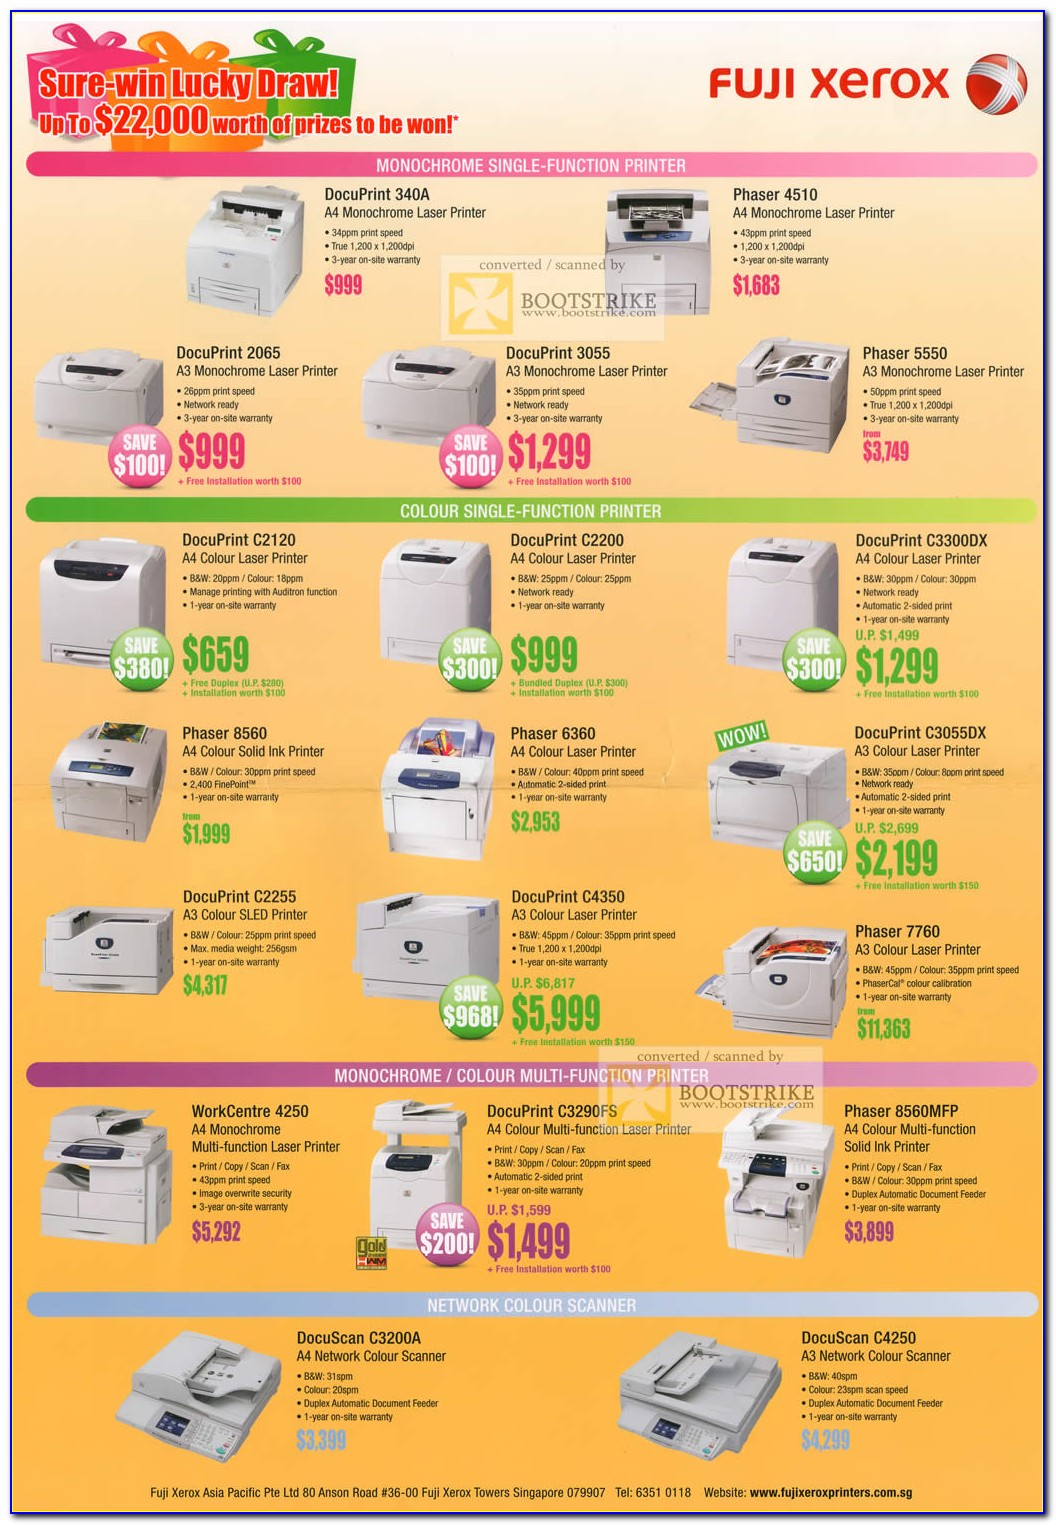 Xerox 5855 Brochure Download